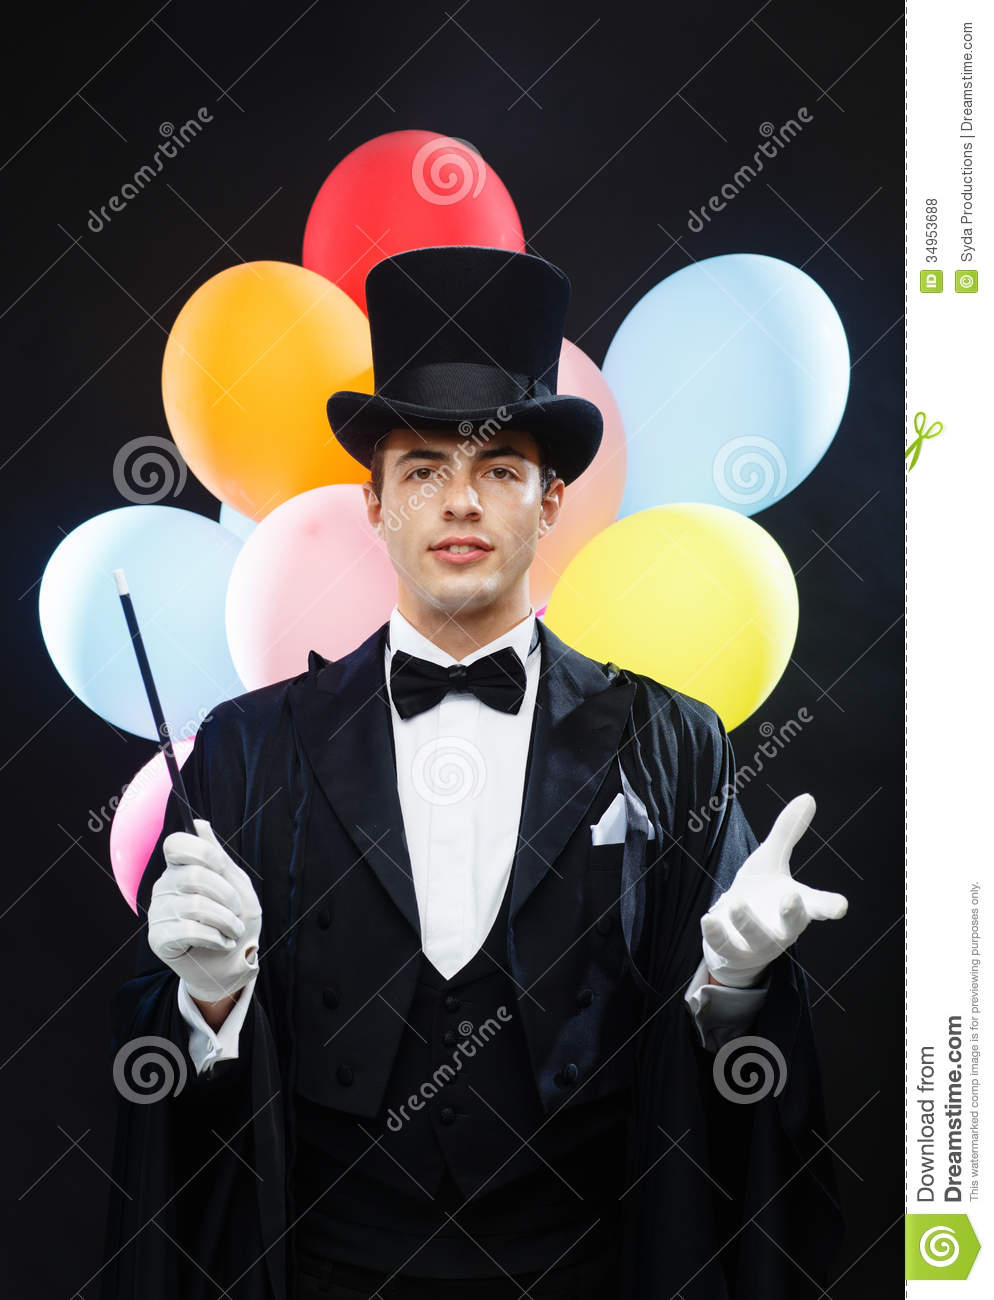 Magician In Top Hat With Magic Wand Showing Trick Royalty Free Stock ...